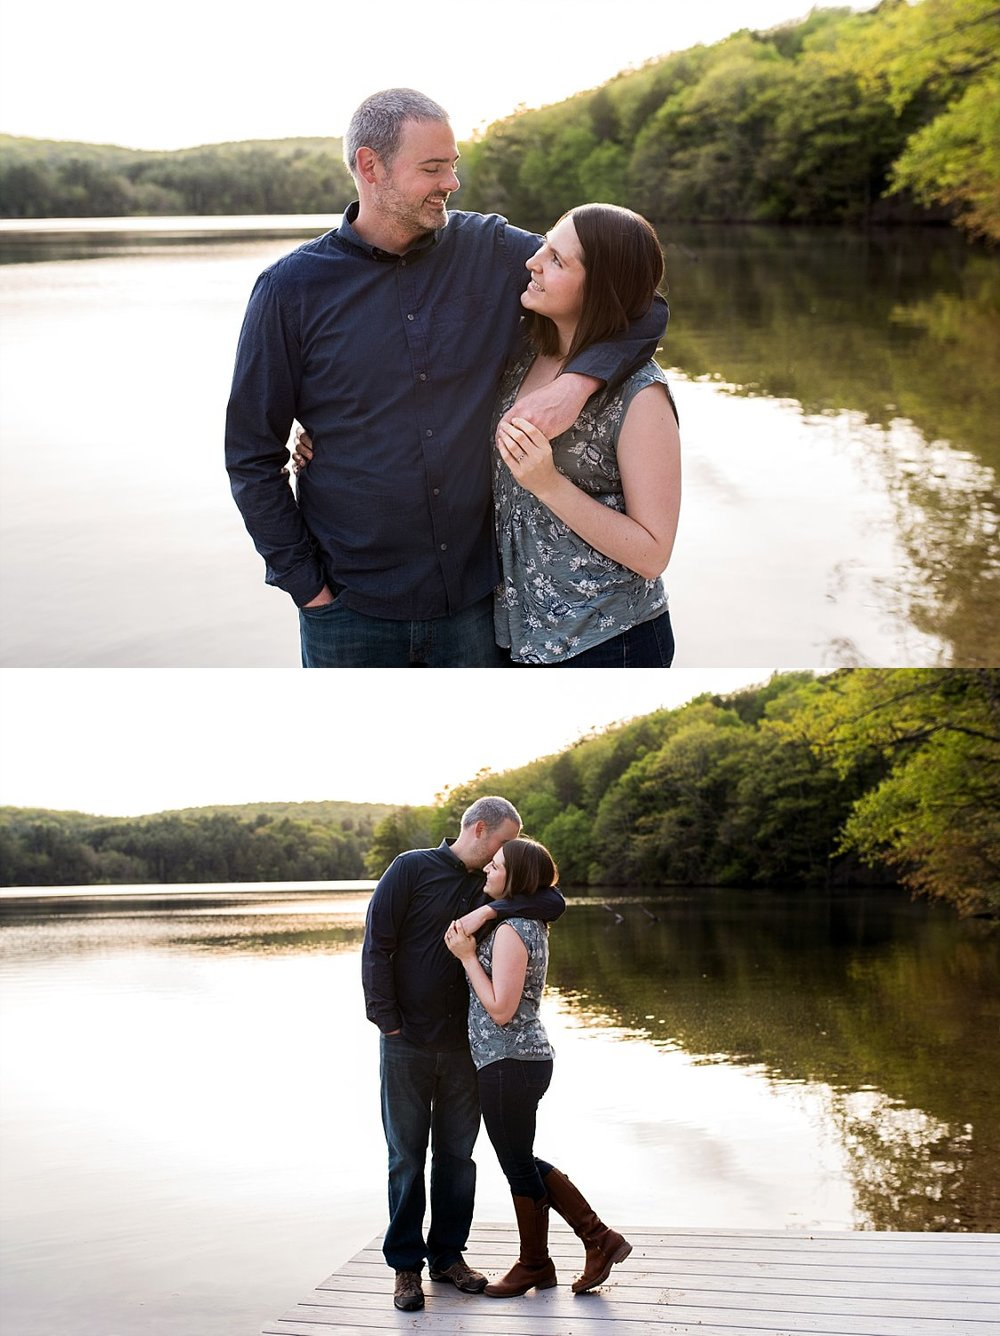 Connecticut engaged couple standing on a dock daydreaming about their CT wedding photos